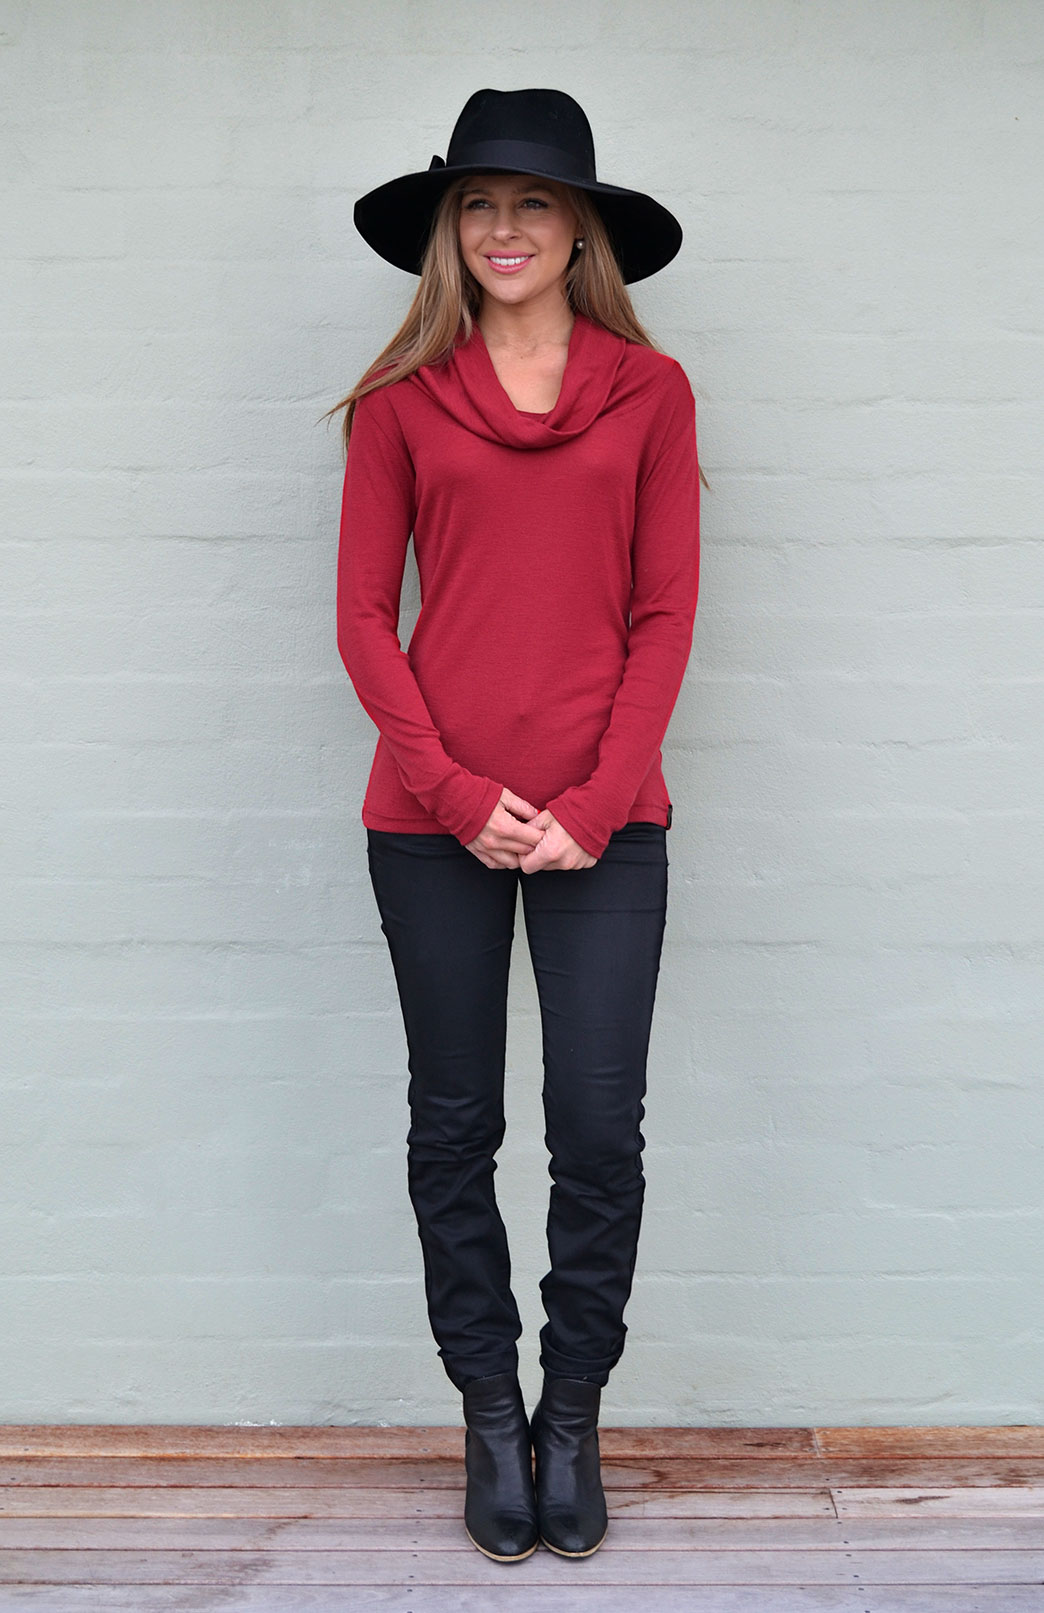 Cowl Neck Top - Long Sleeved - Women's Dark Red Wool Long Sleeved Cowl Neck Top - Smitten Merino Tasmania Australia